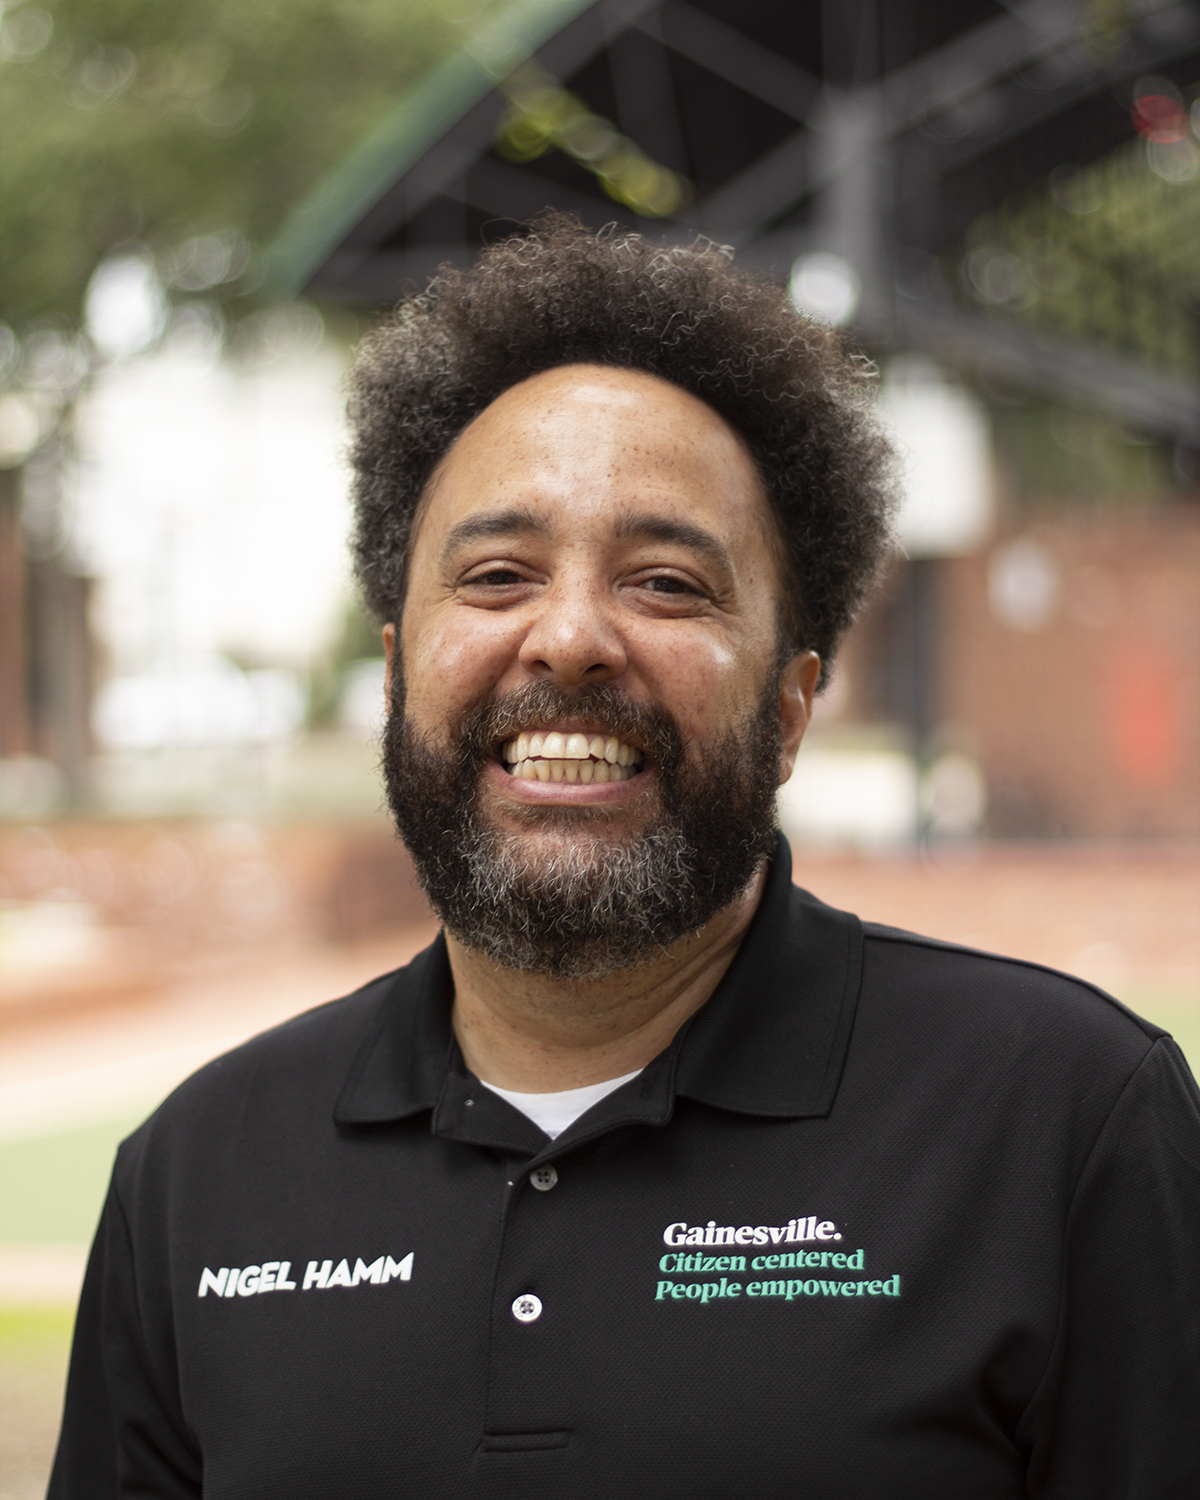 Nigel Hamm - Program and Event Coordinator